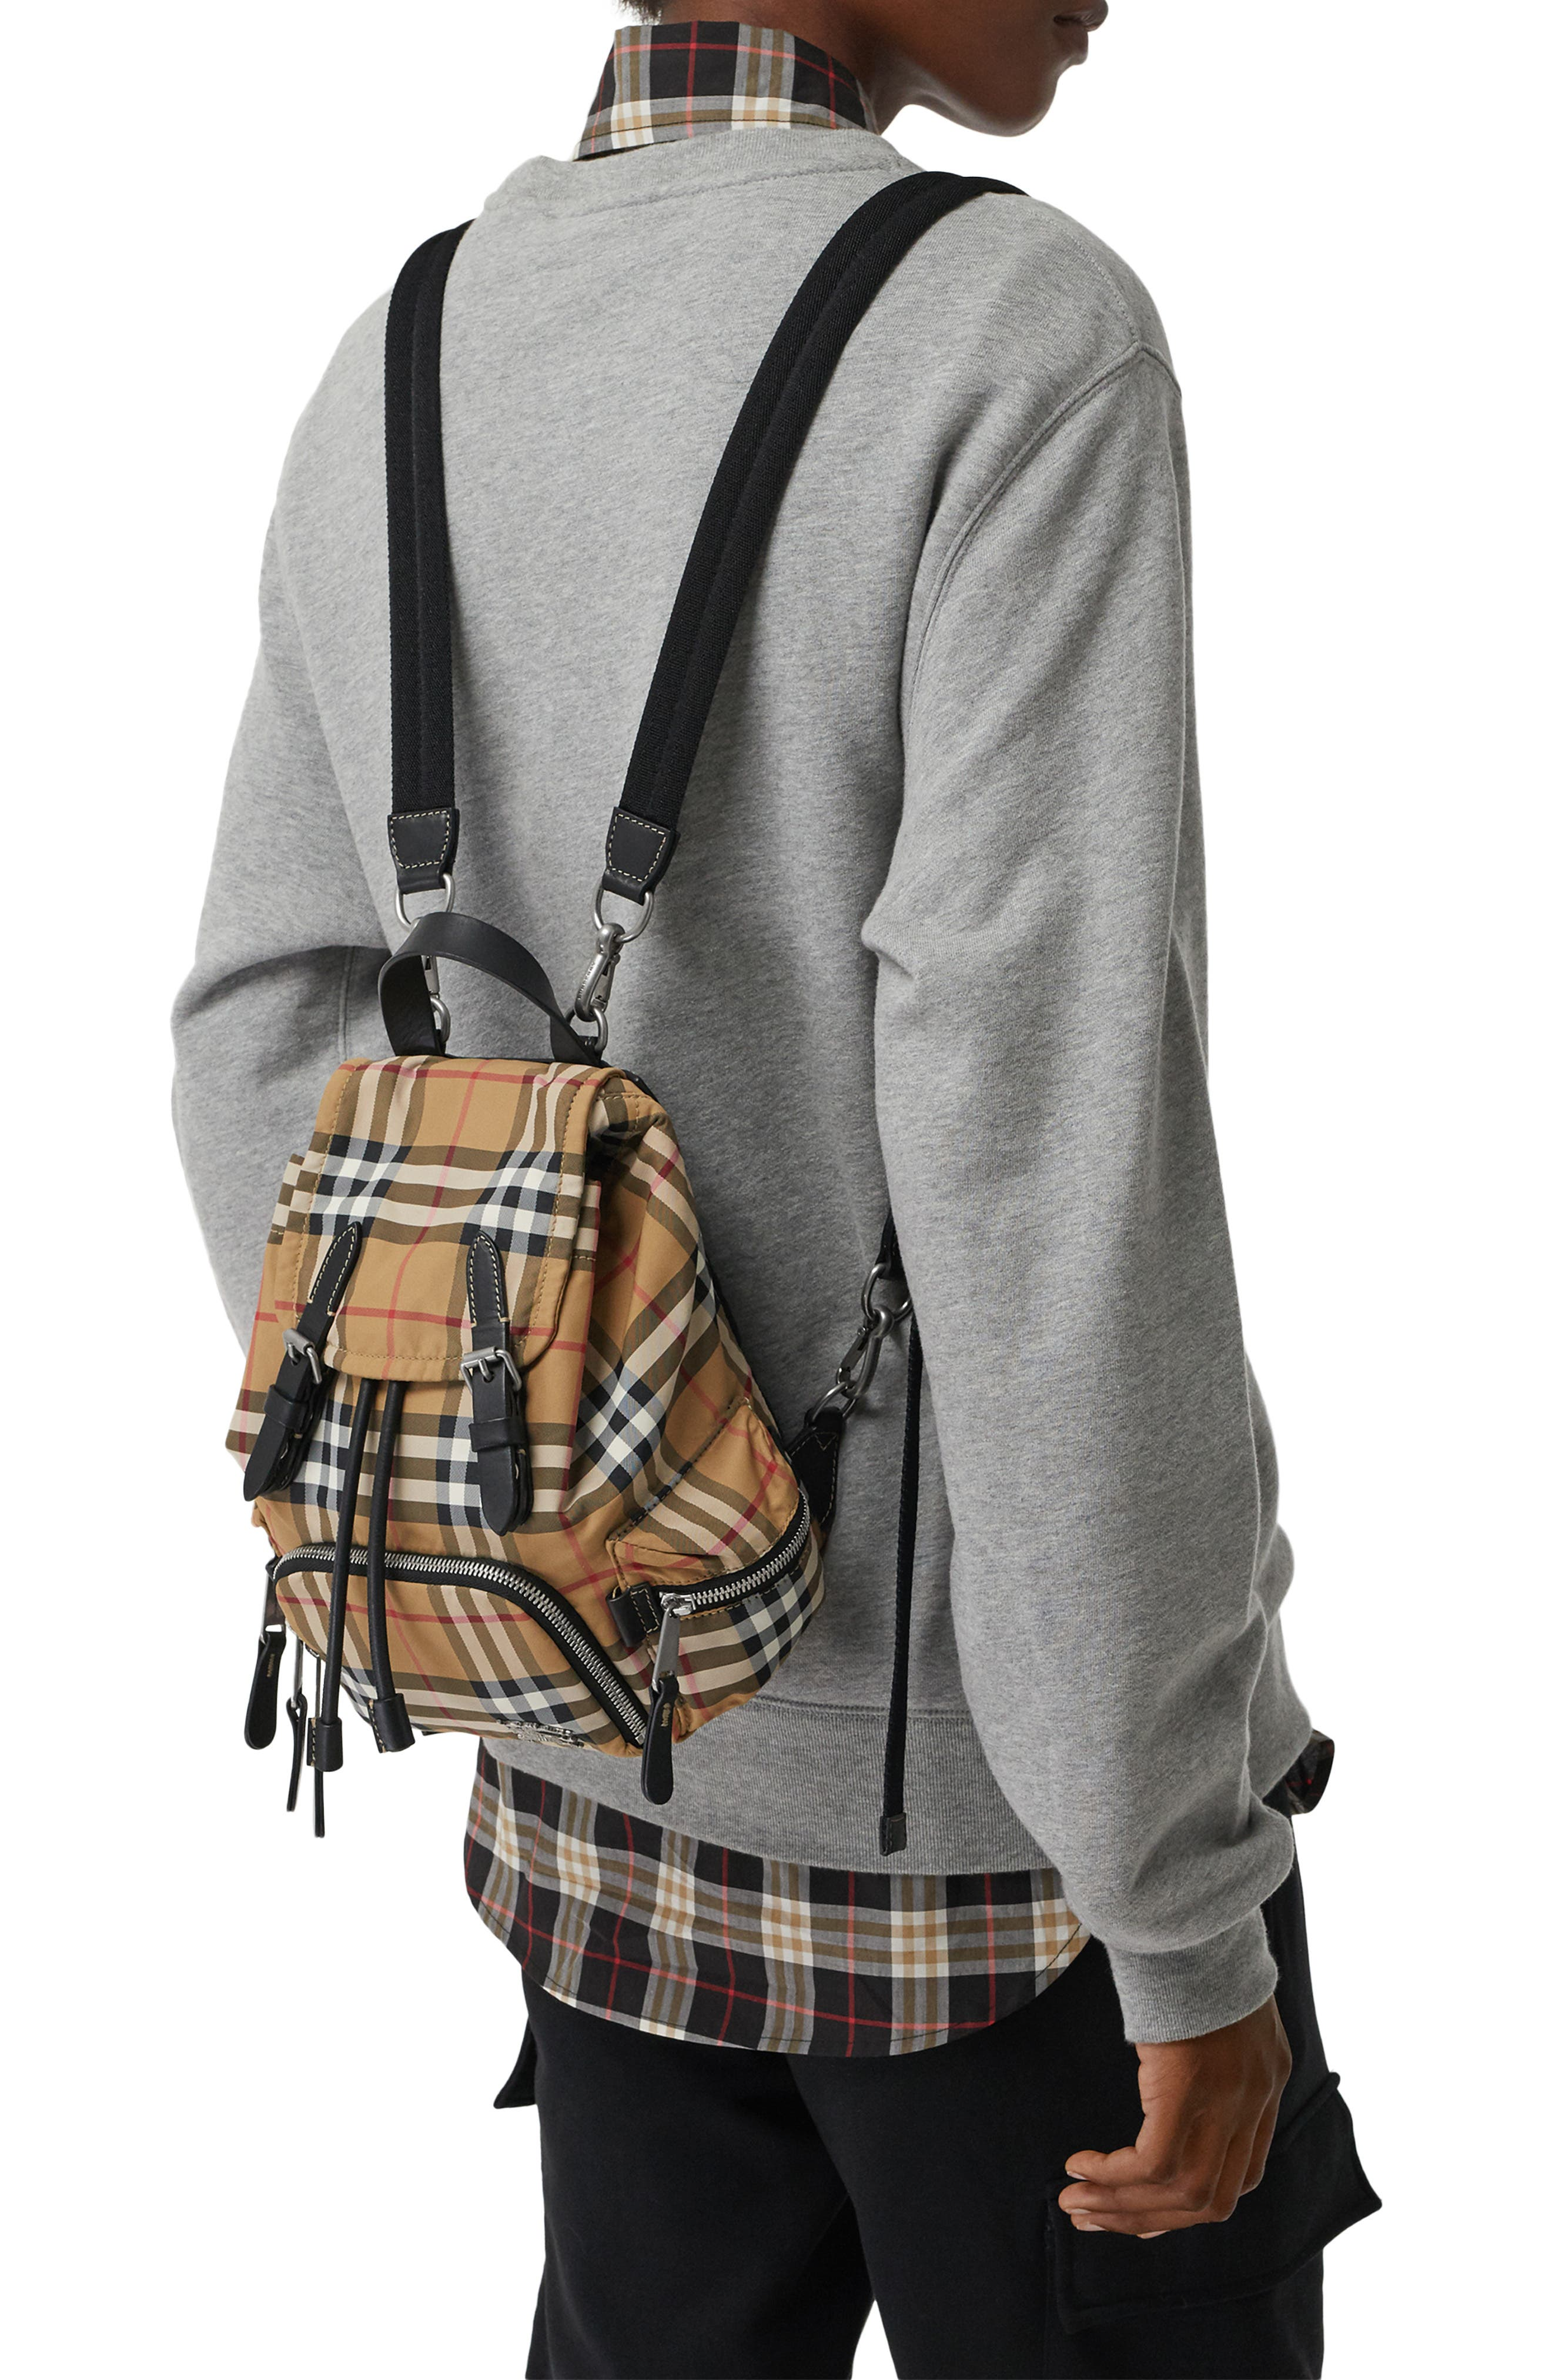 BURBERRY,                             Small Rucksack Vintage Check Nylon Backpack,                             Alternate thumbnail 2, color,                             ANTIQUE YELLOW/ BLACK